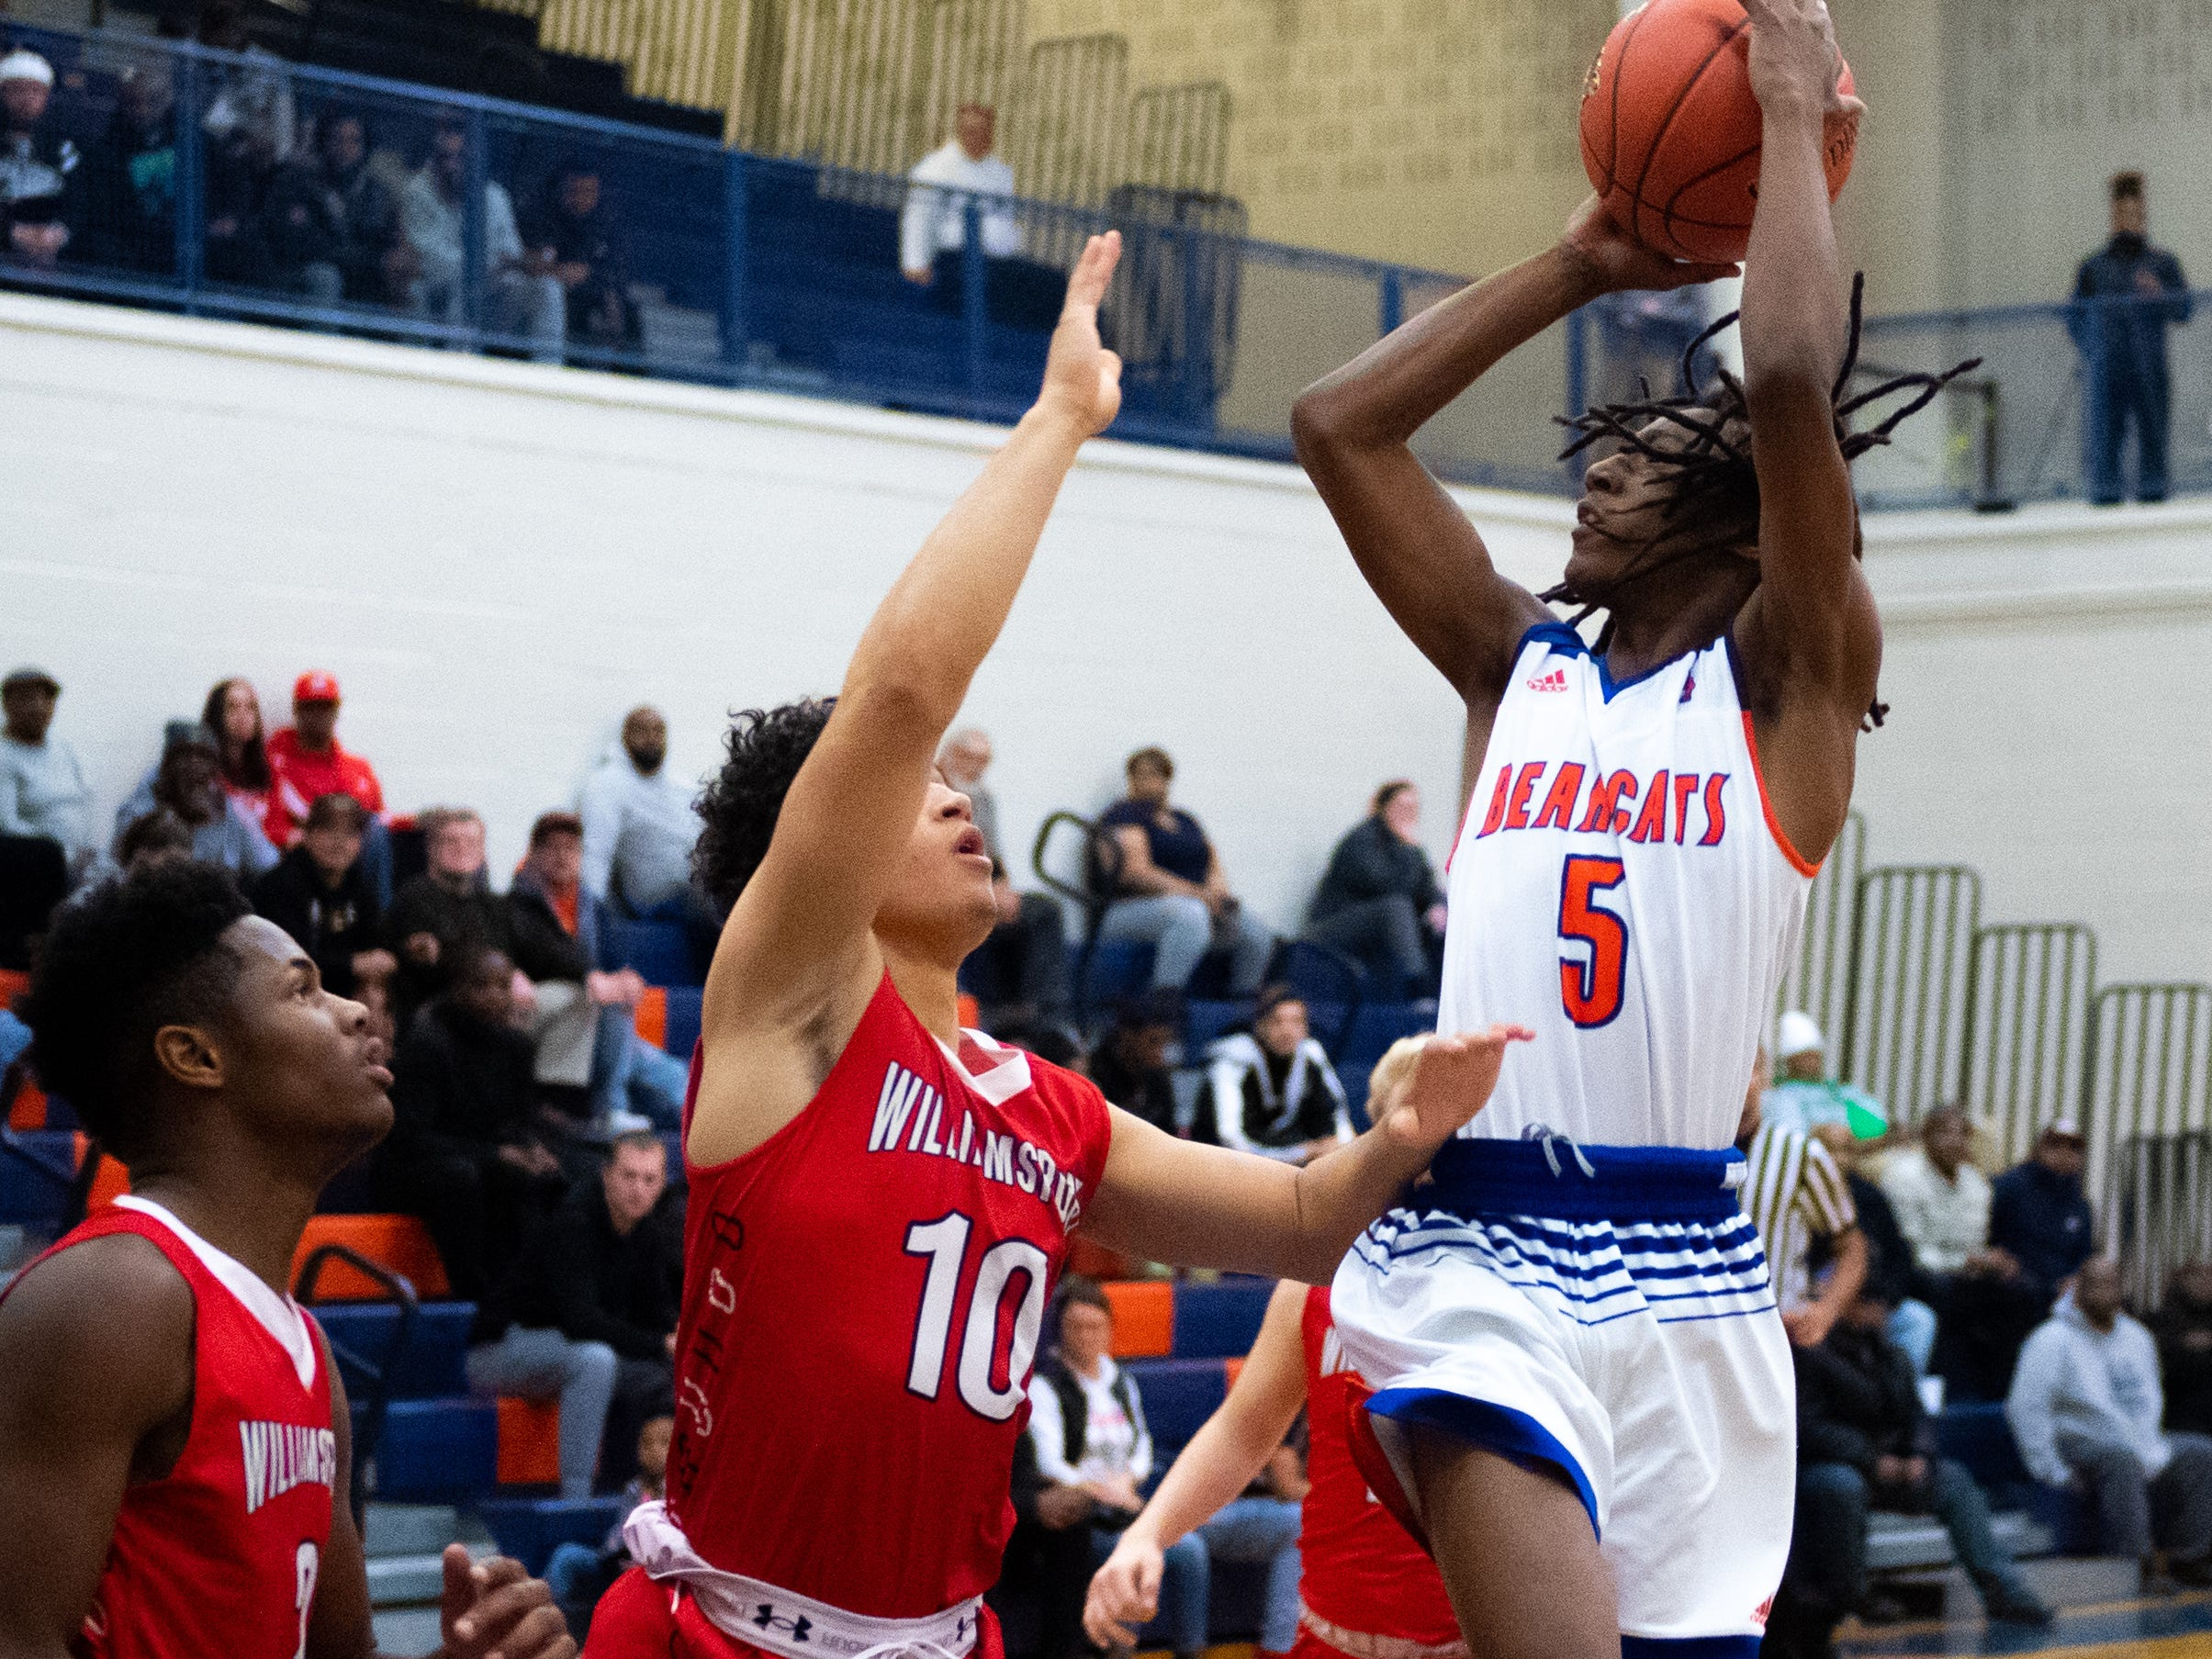 Edward Minter (5) of York High goes up for the shot during the Tip-Off Tournament championship game between York High and Williamsport at York High, Saturday, December 8, 2018. The Bearcats defeated the Millionaires 74-47.